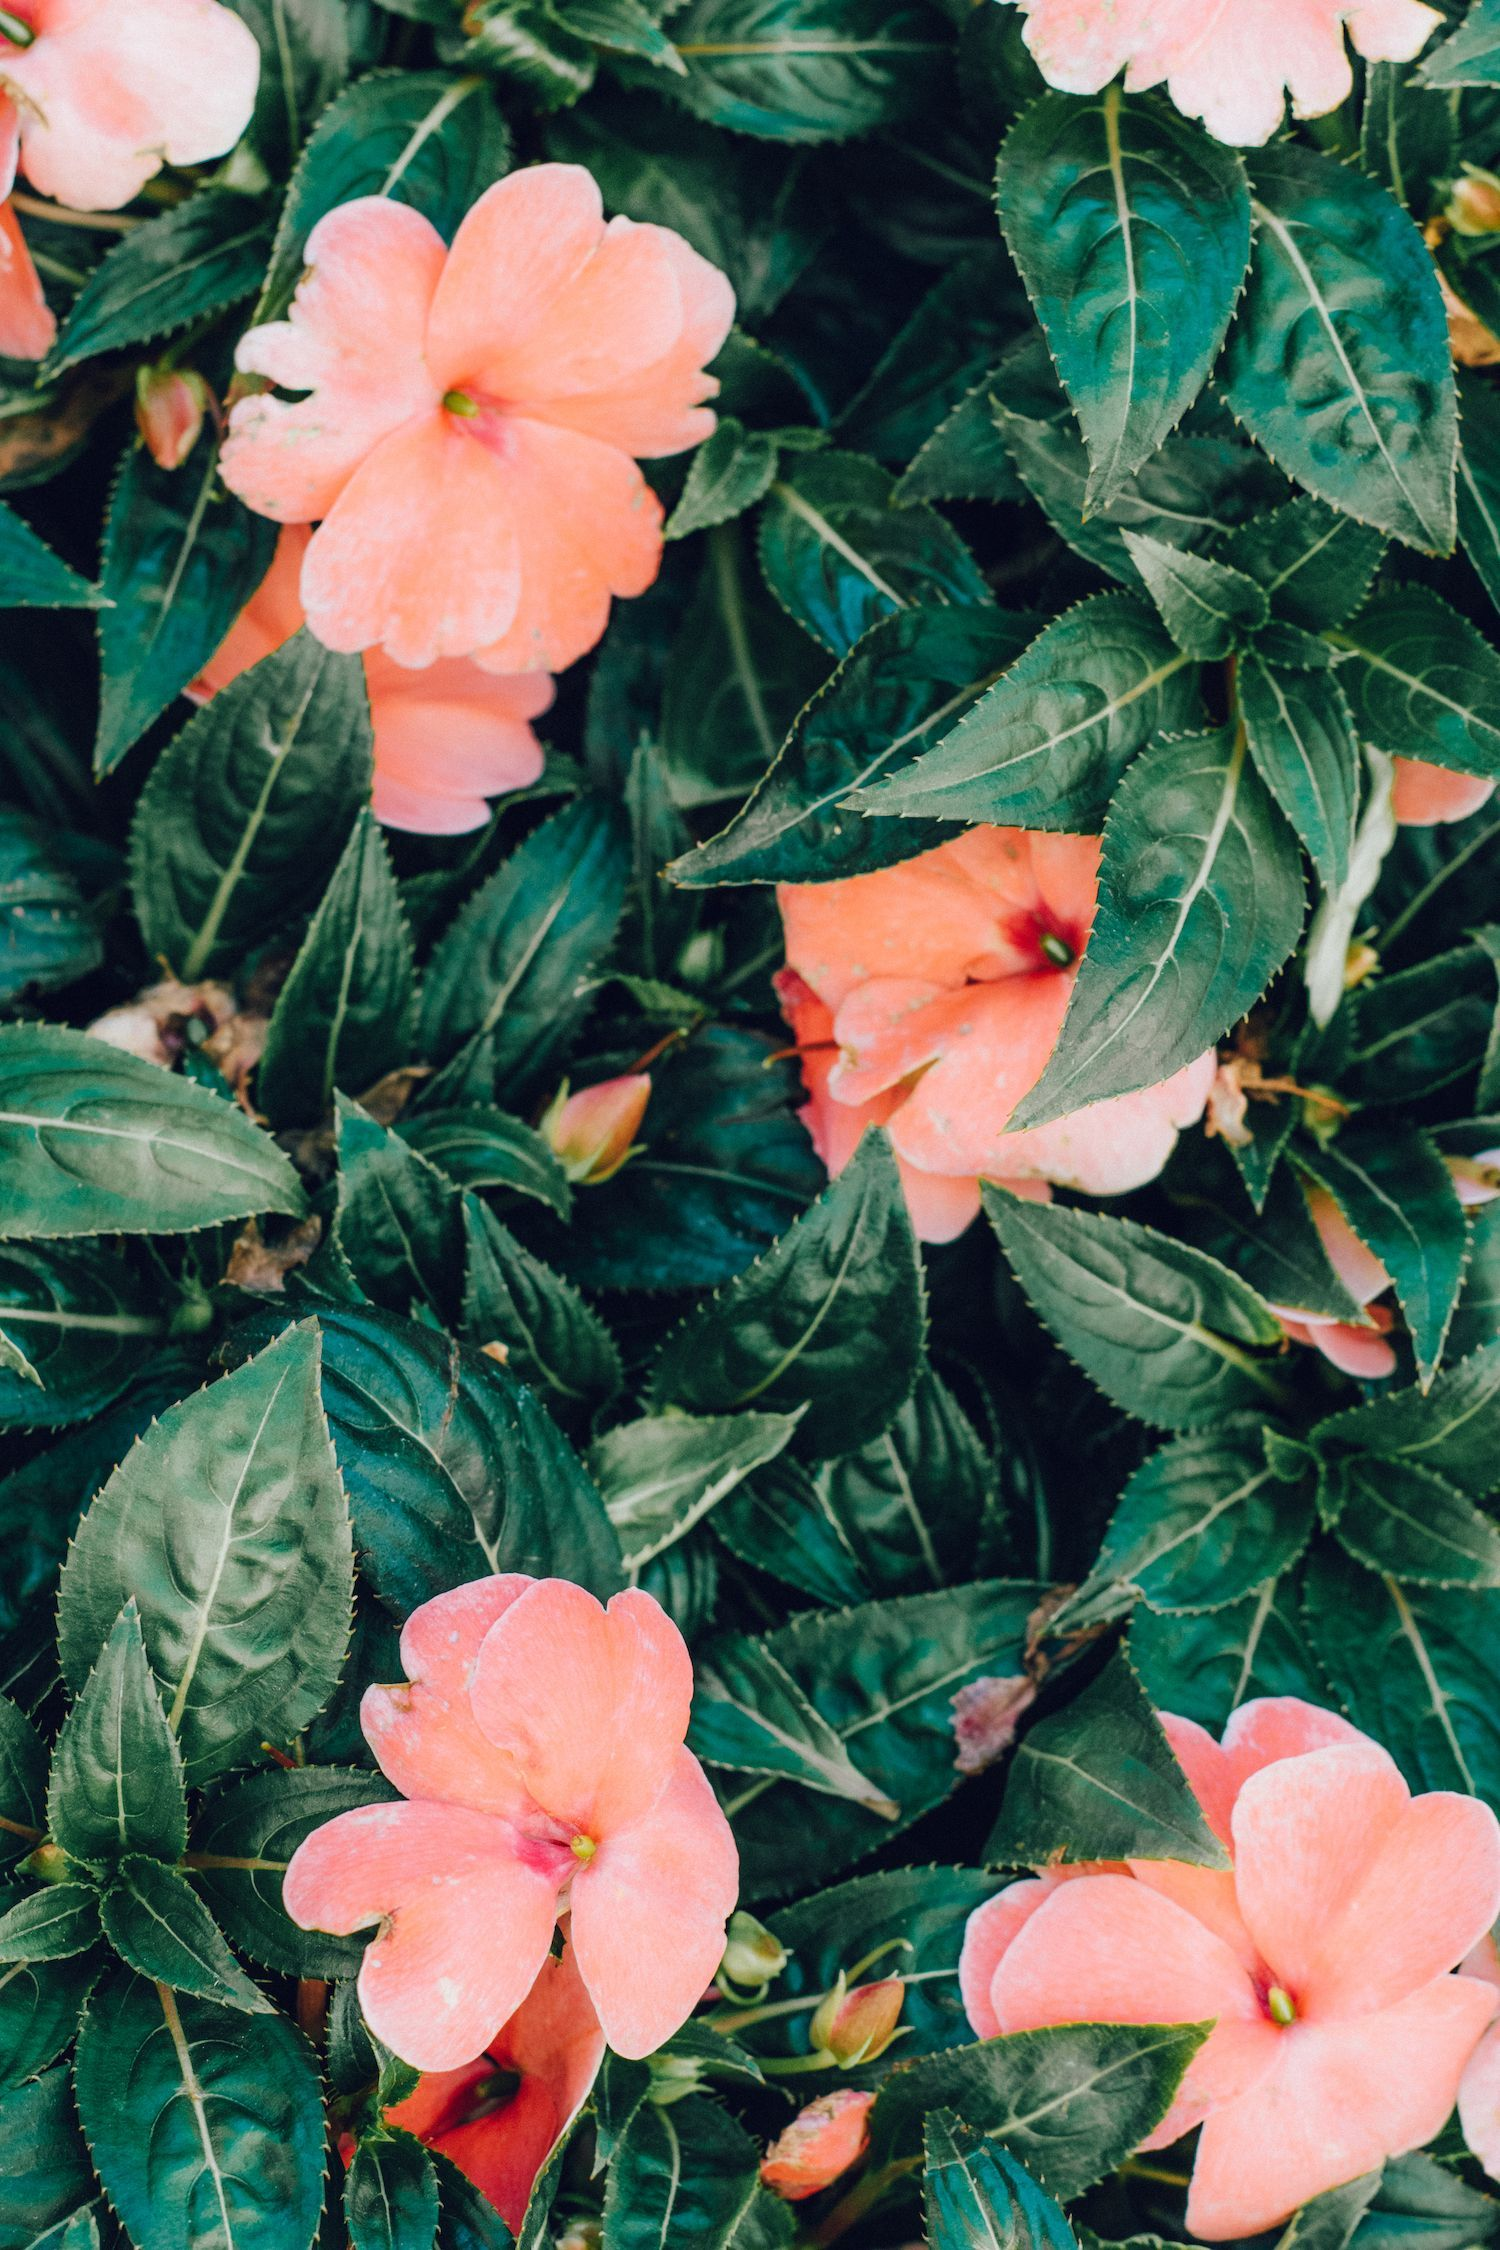 Flowers Iphone Wallpaper Tumblr Ipcwallpapers In 2020 Iphone Wallpaper Tumblr Aesthetic Flower Background Iphone Tumblr Flower